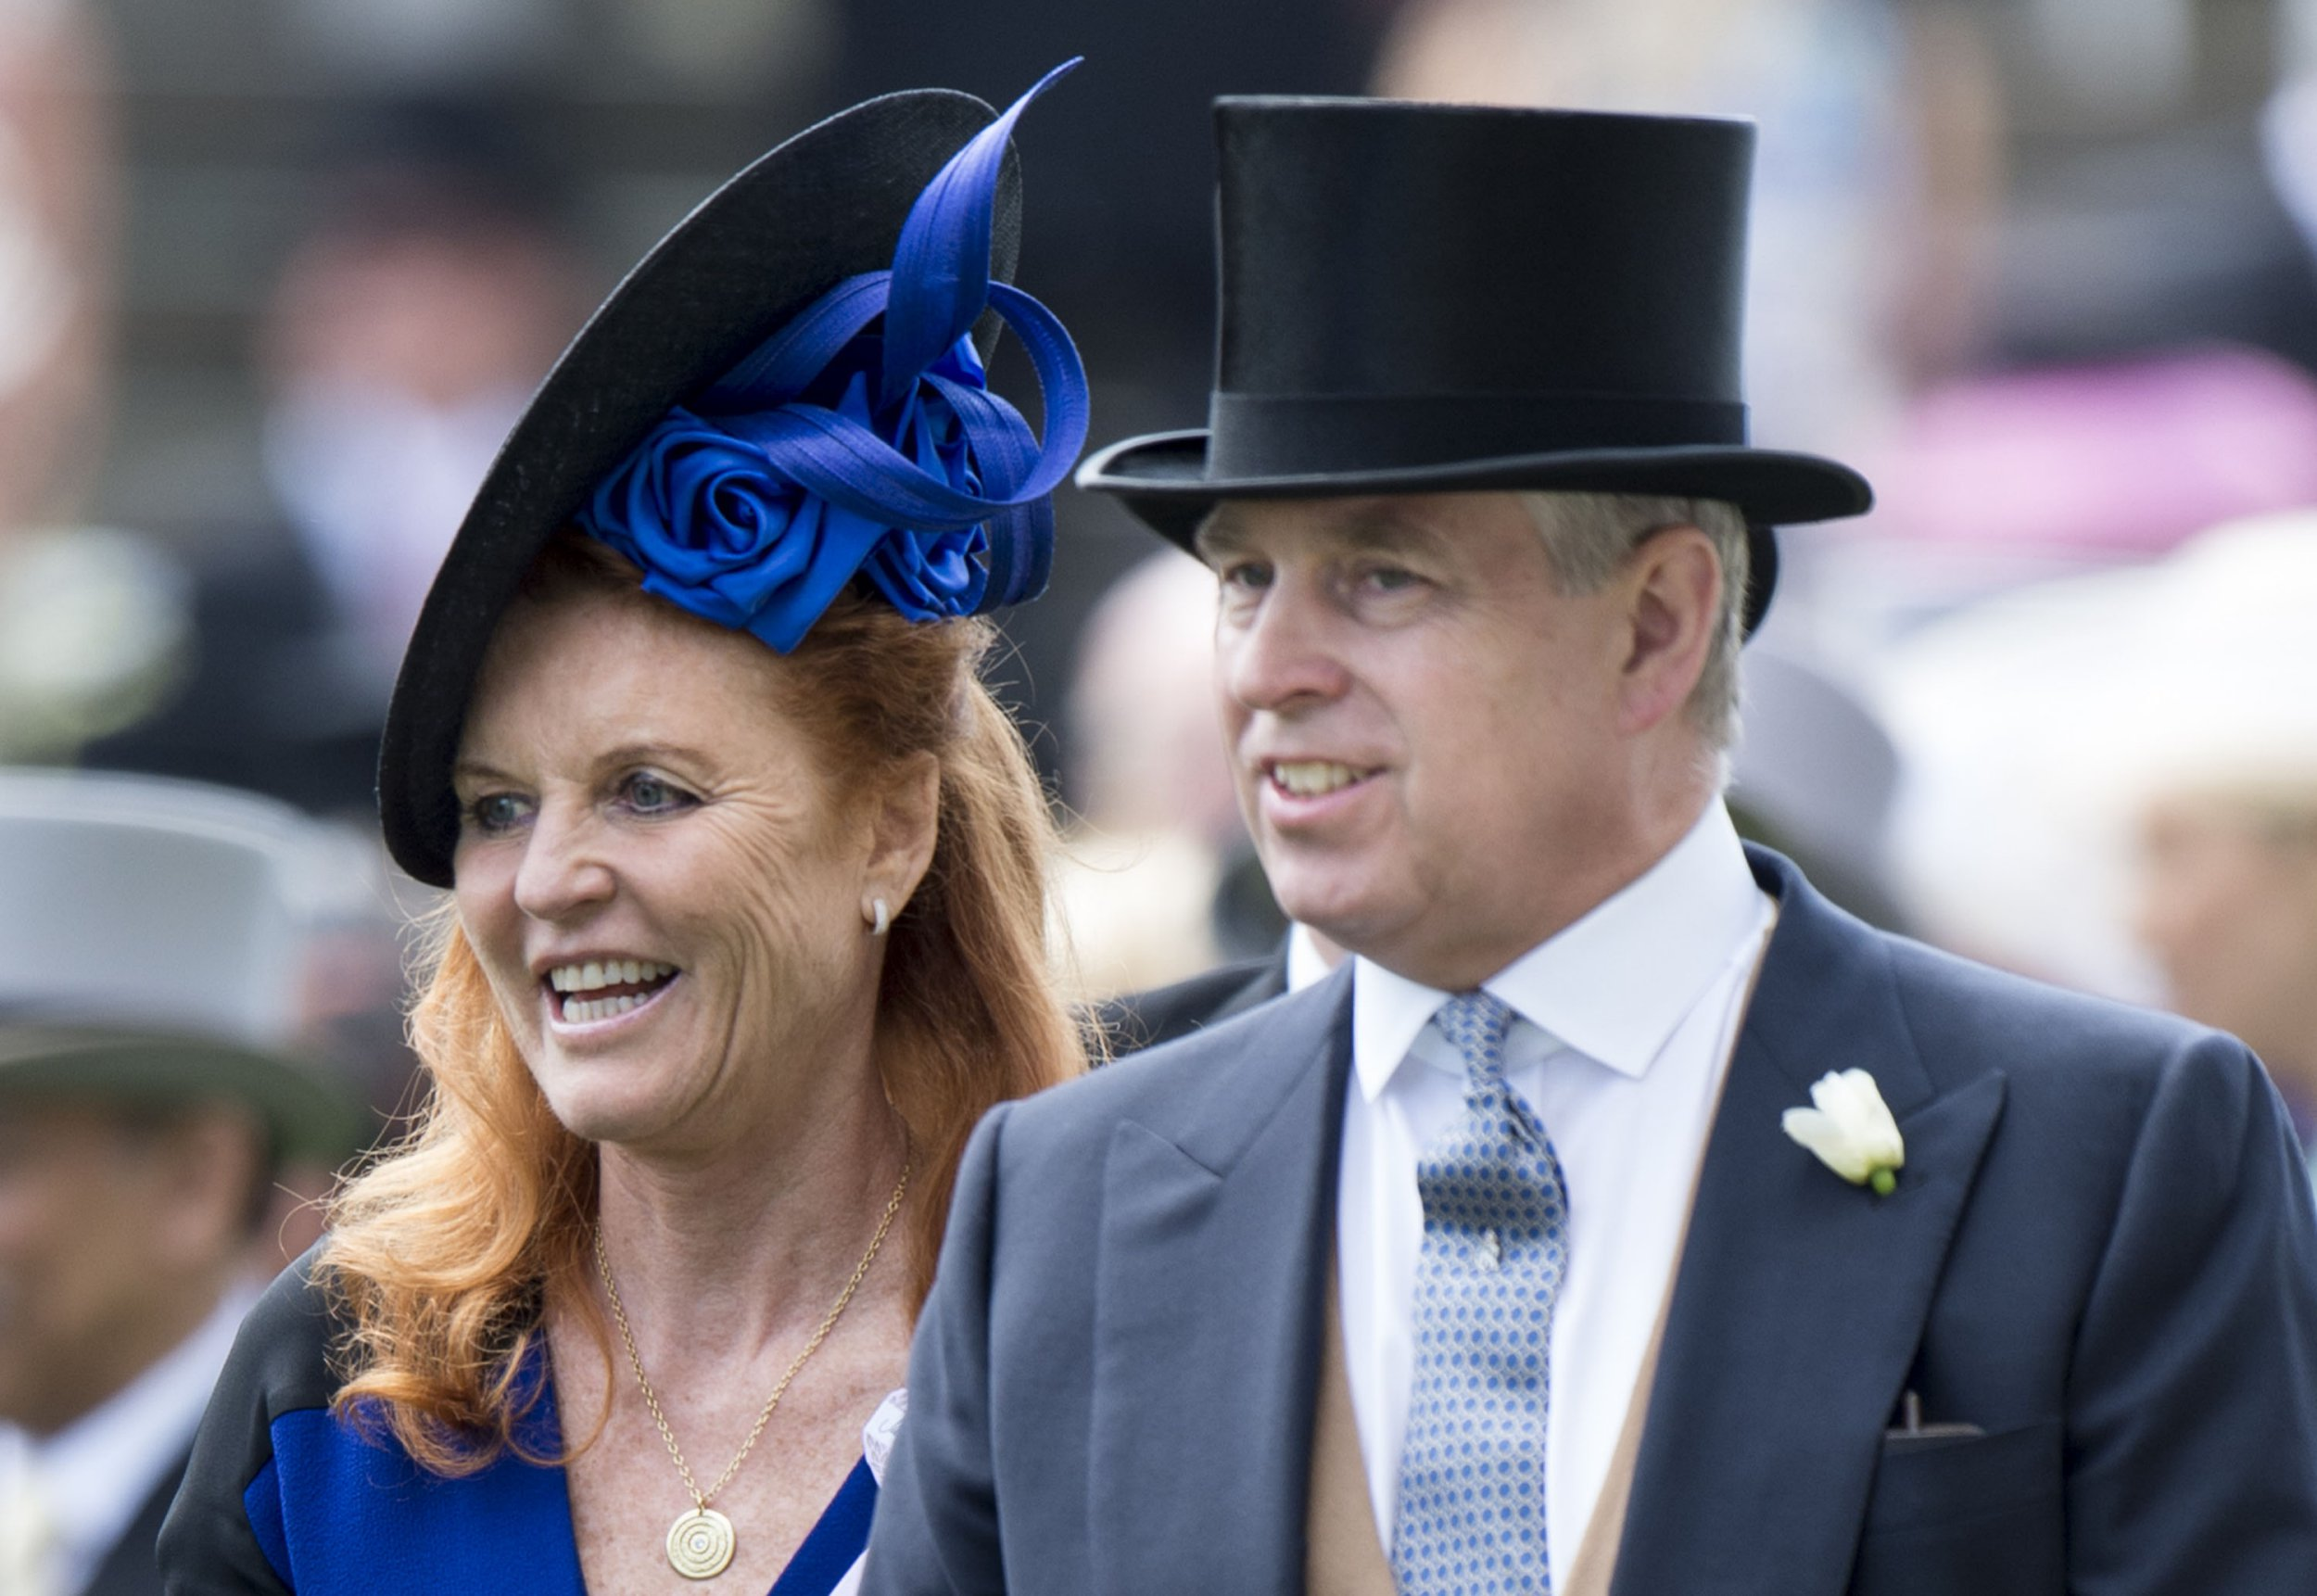 ASCOT, ENGLAND - JUNE 19: Sarah Ferguson, Duchess of York and Prince Andrew, Duke of York on day 4 of Royal Ascot at Ascot Racecourse on June 19, 2015 in Ascot, England. (Photo by Mark Cuthbert/UK Press via Getty Images)